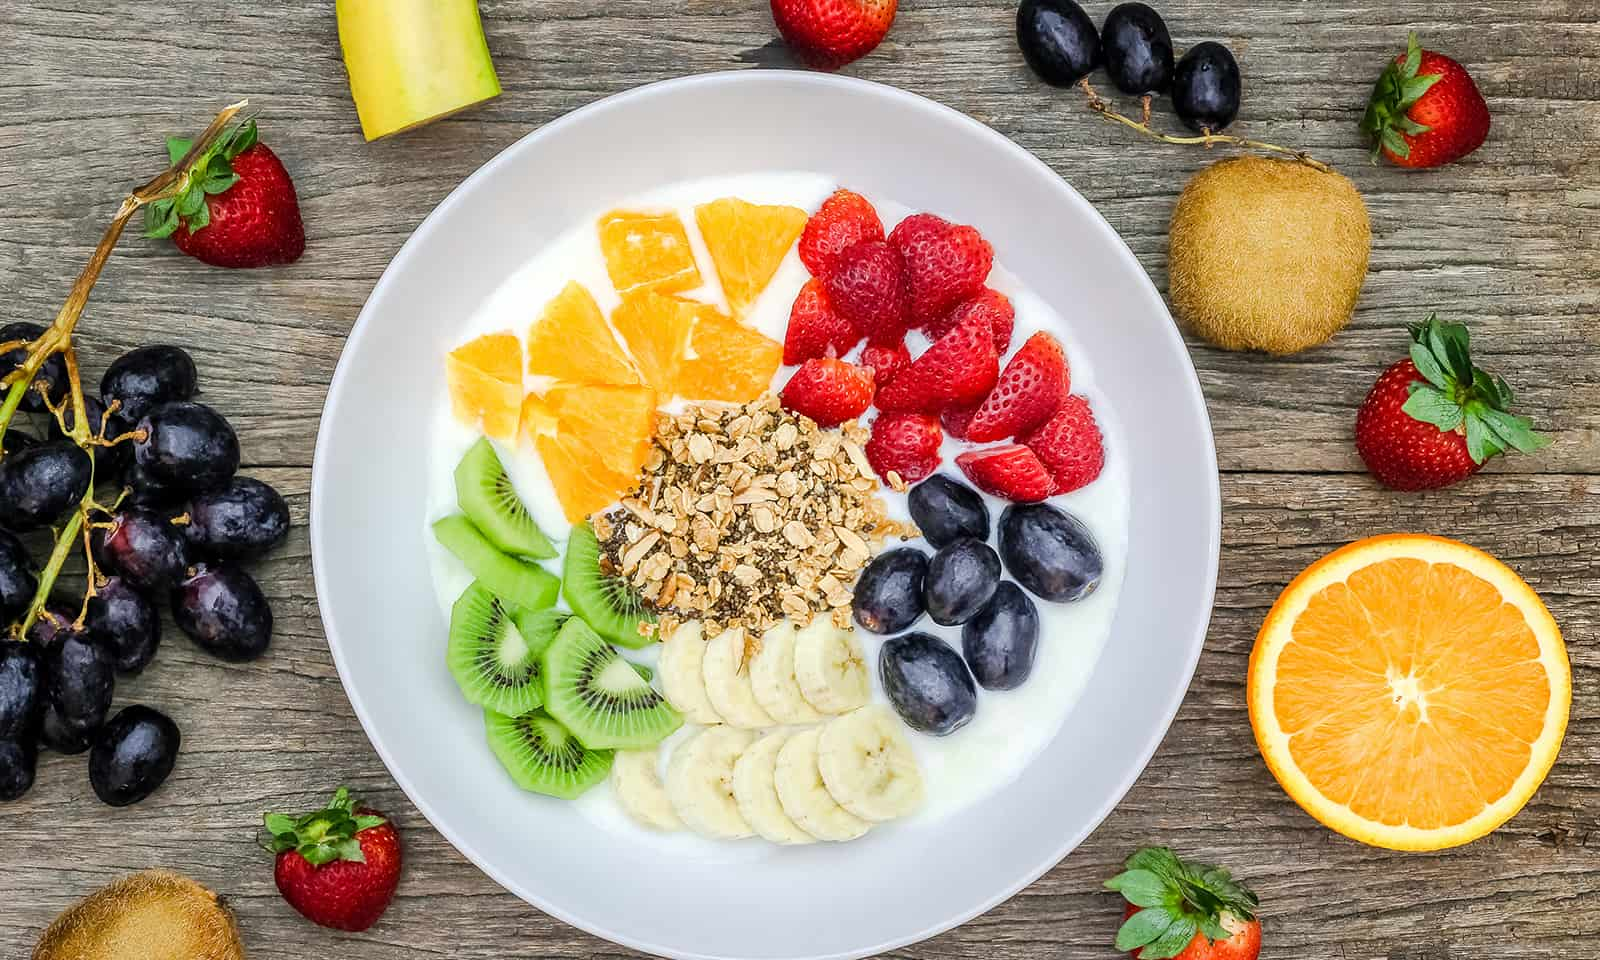 Workplace-Snacking-Signifies-the-Major-Opportunity-to-Impact-Health